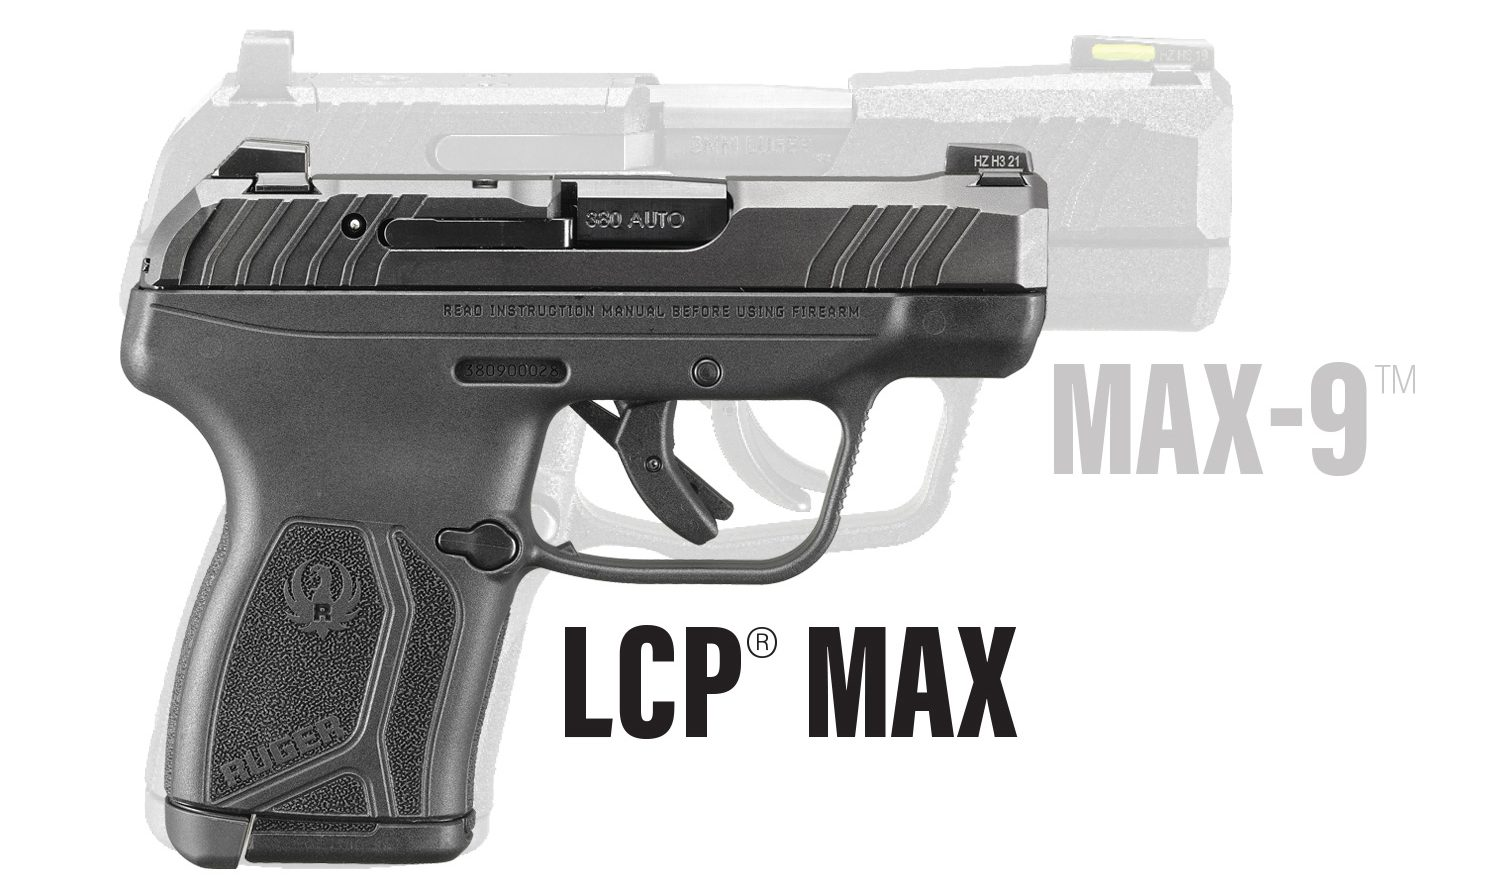 Ruger Introduces the New Ruger LCP MAX 380 Pistol